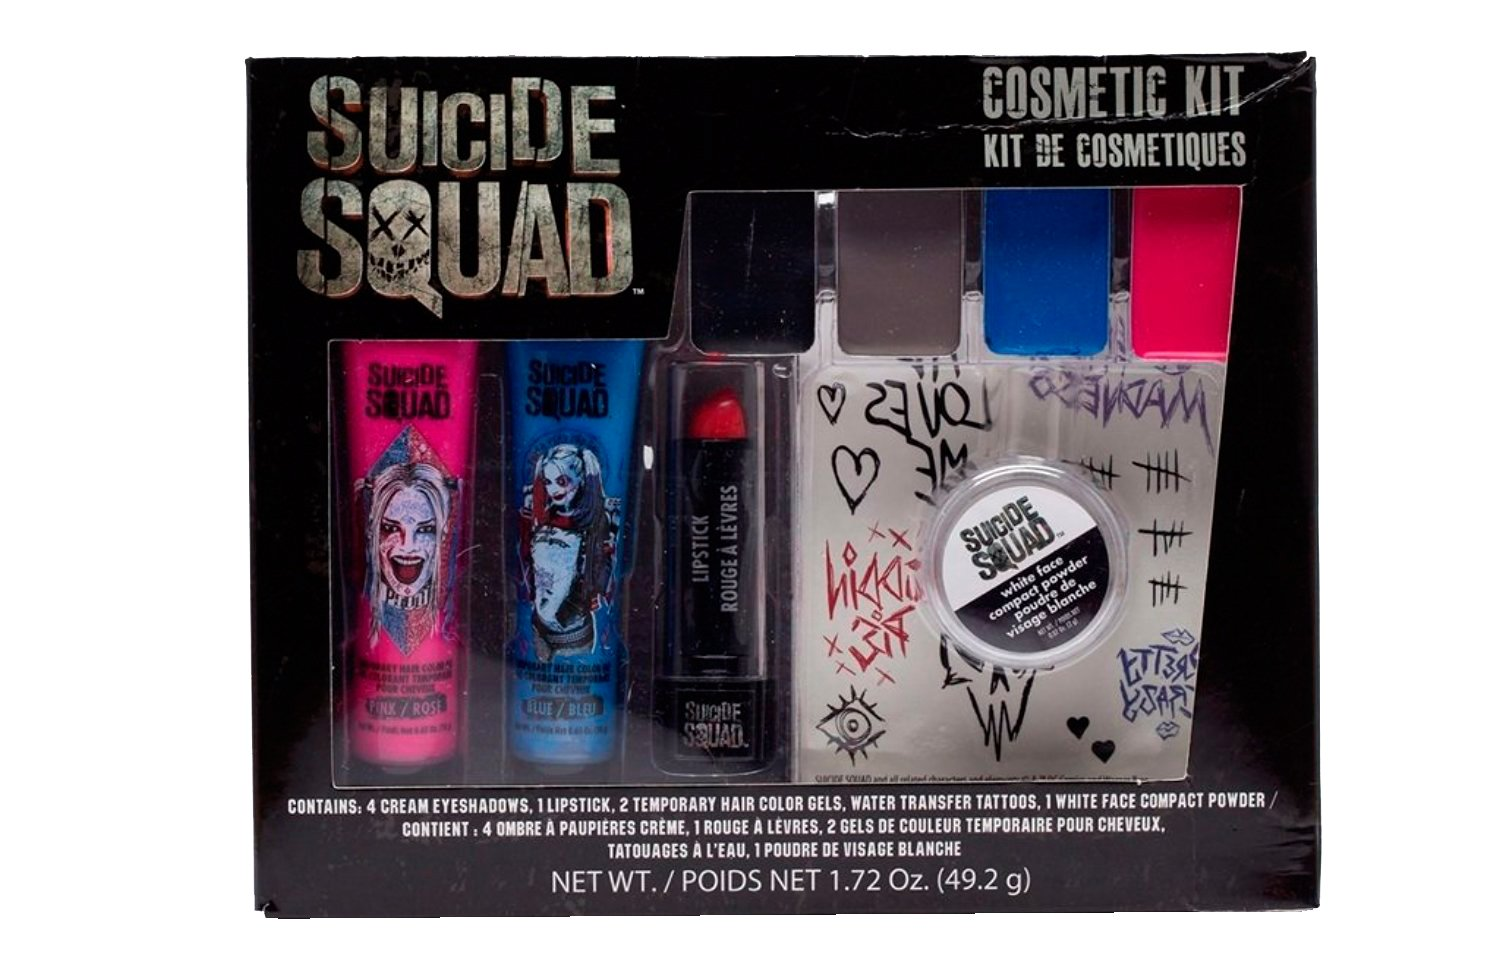 SUICIDE SQUAD Harley Quinn costume Makeup Cosmetic Kit by GBG